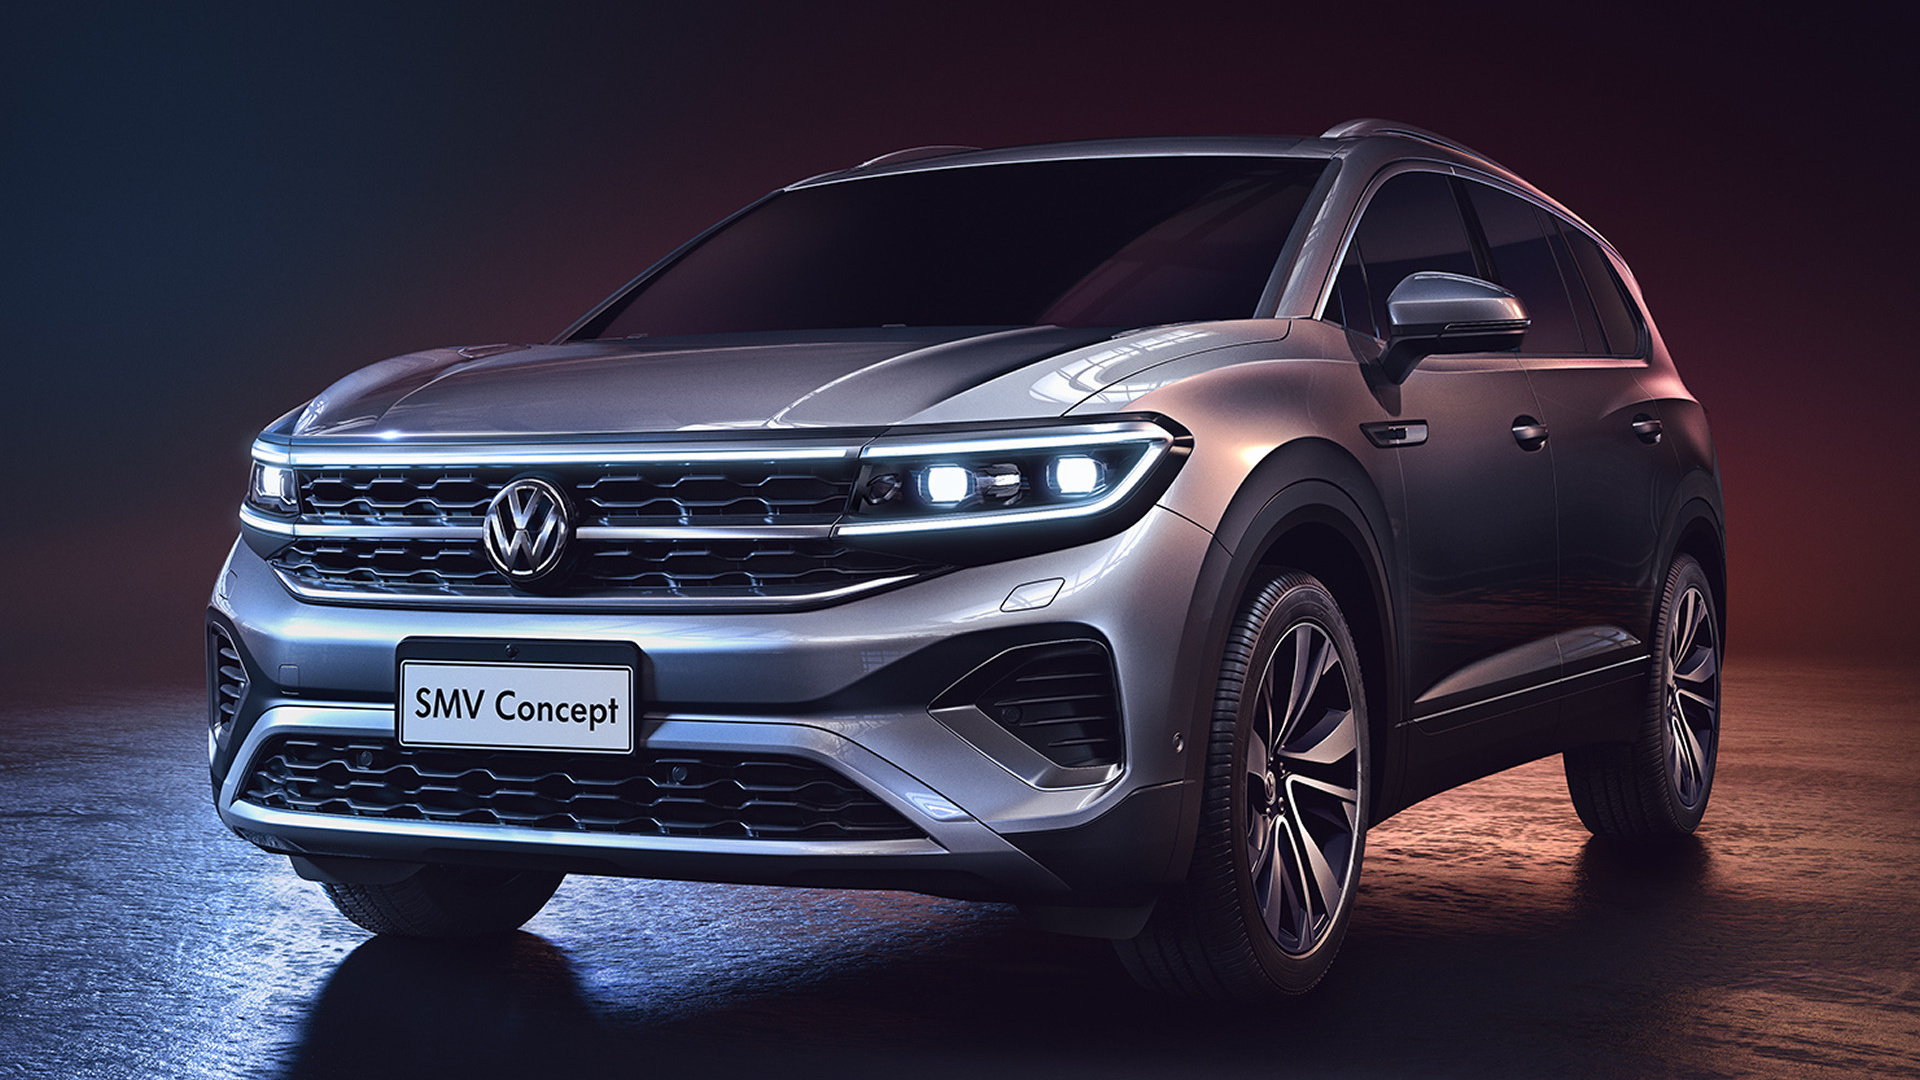 2019 Volkswagen SMV Concept - Wallpapers and HD Images ...